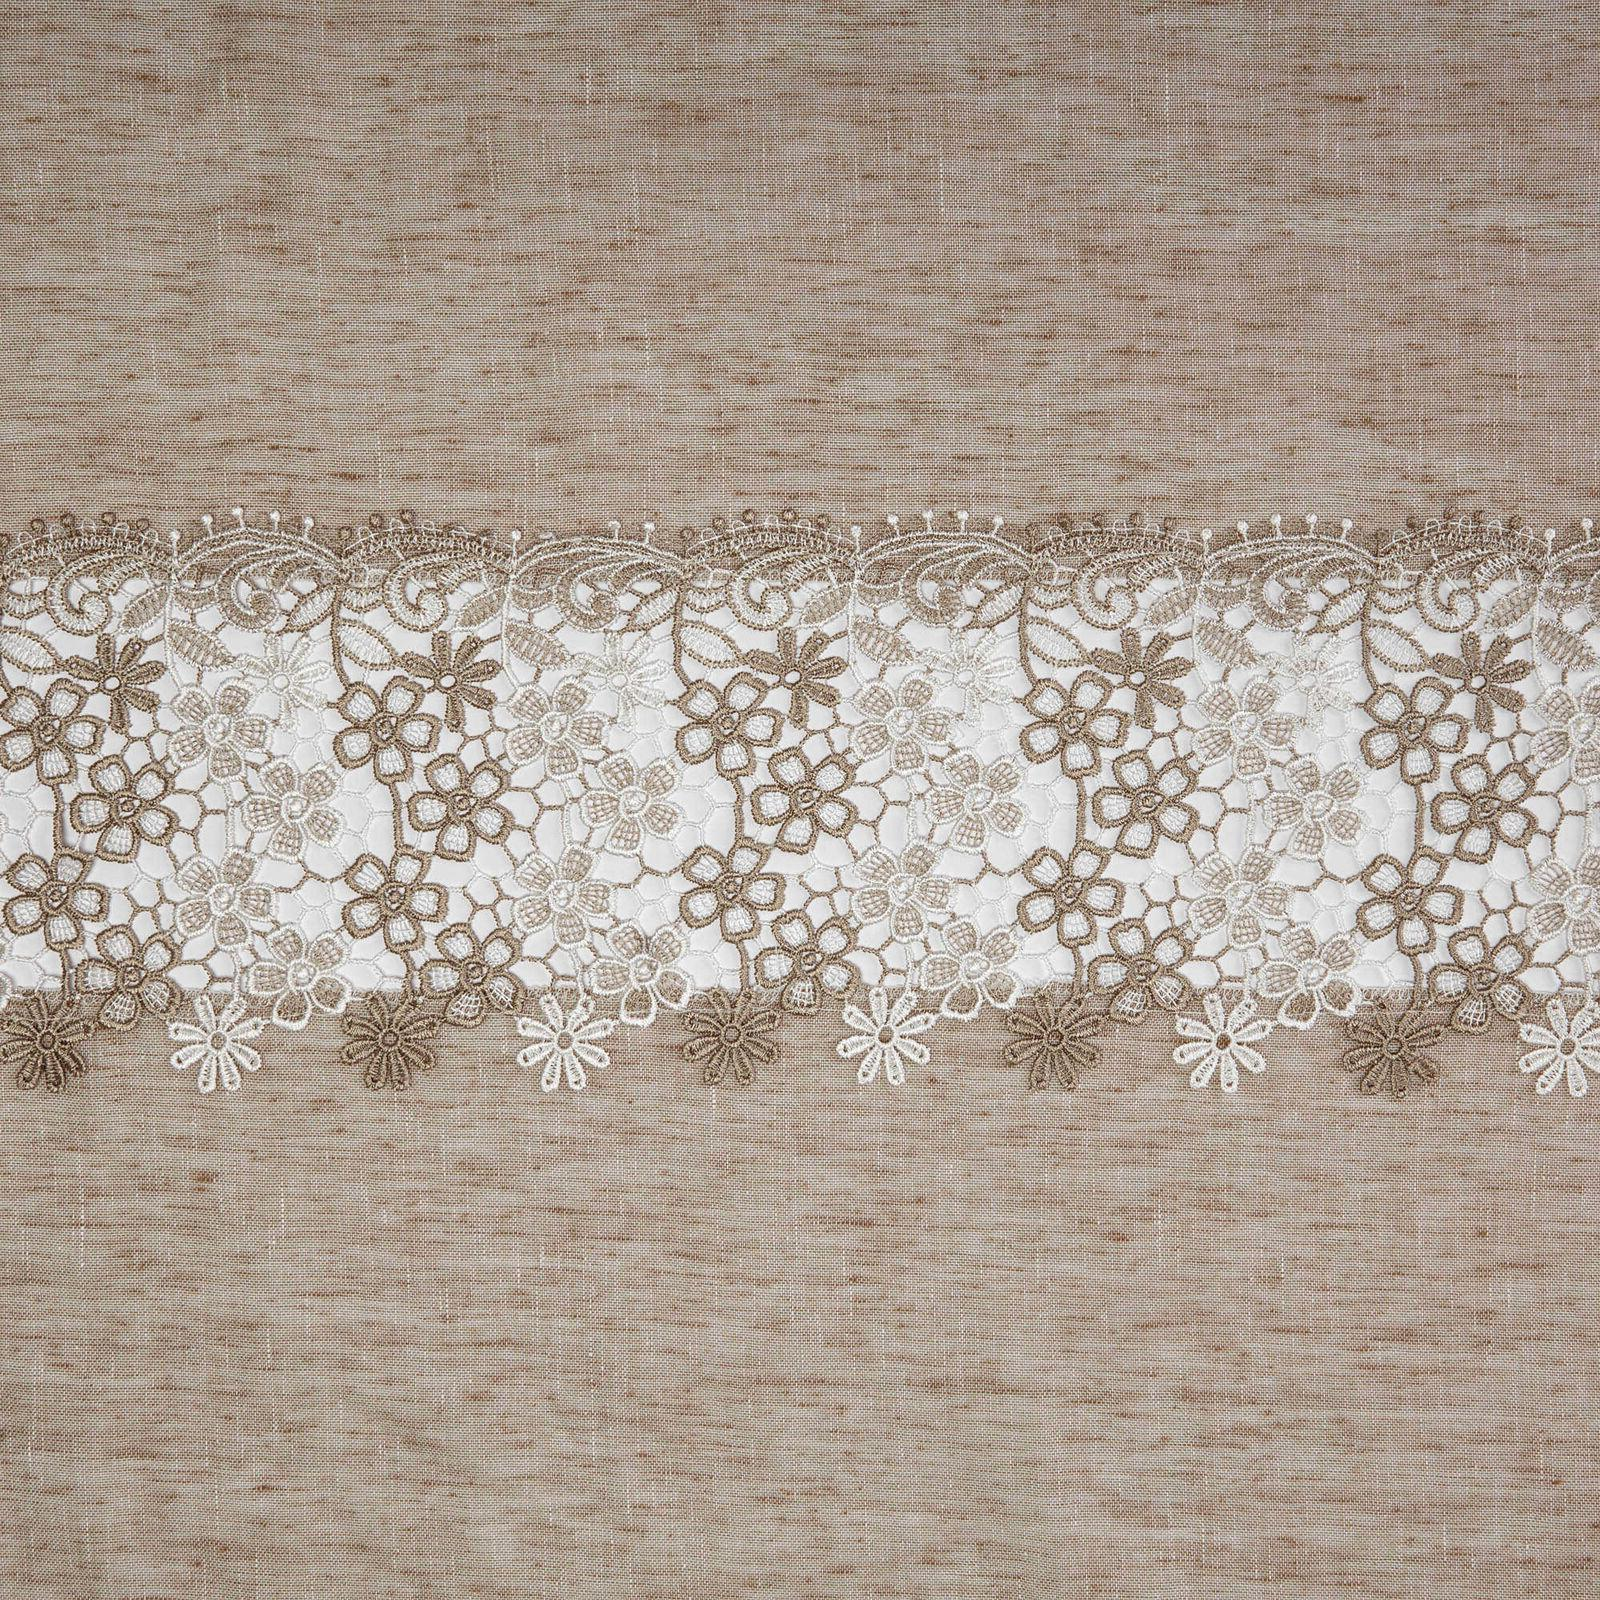 NEW Lillian Kitchen Curtain with Trim Macrame